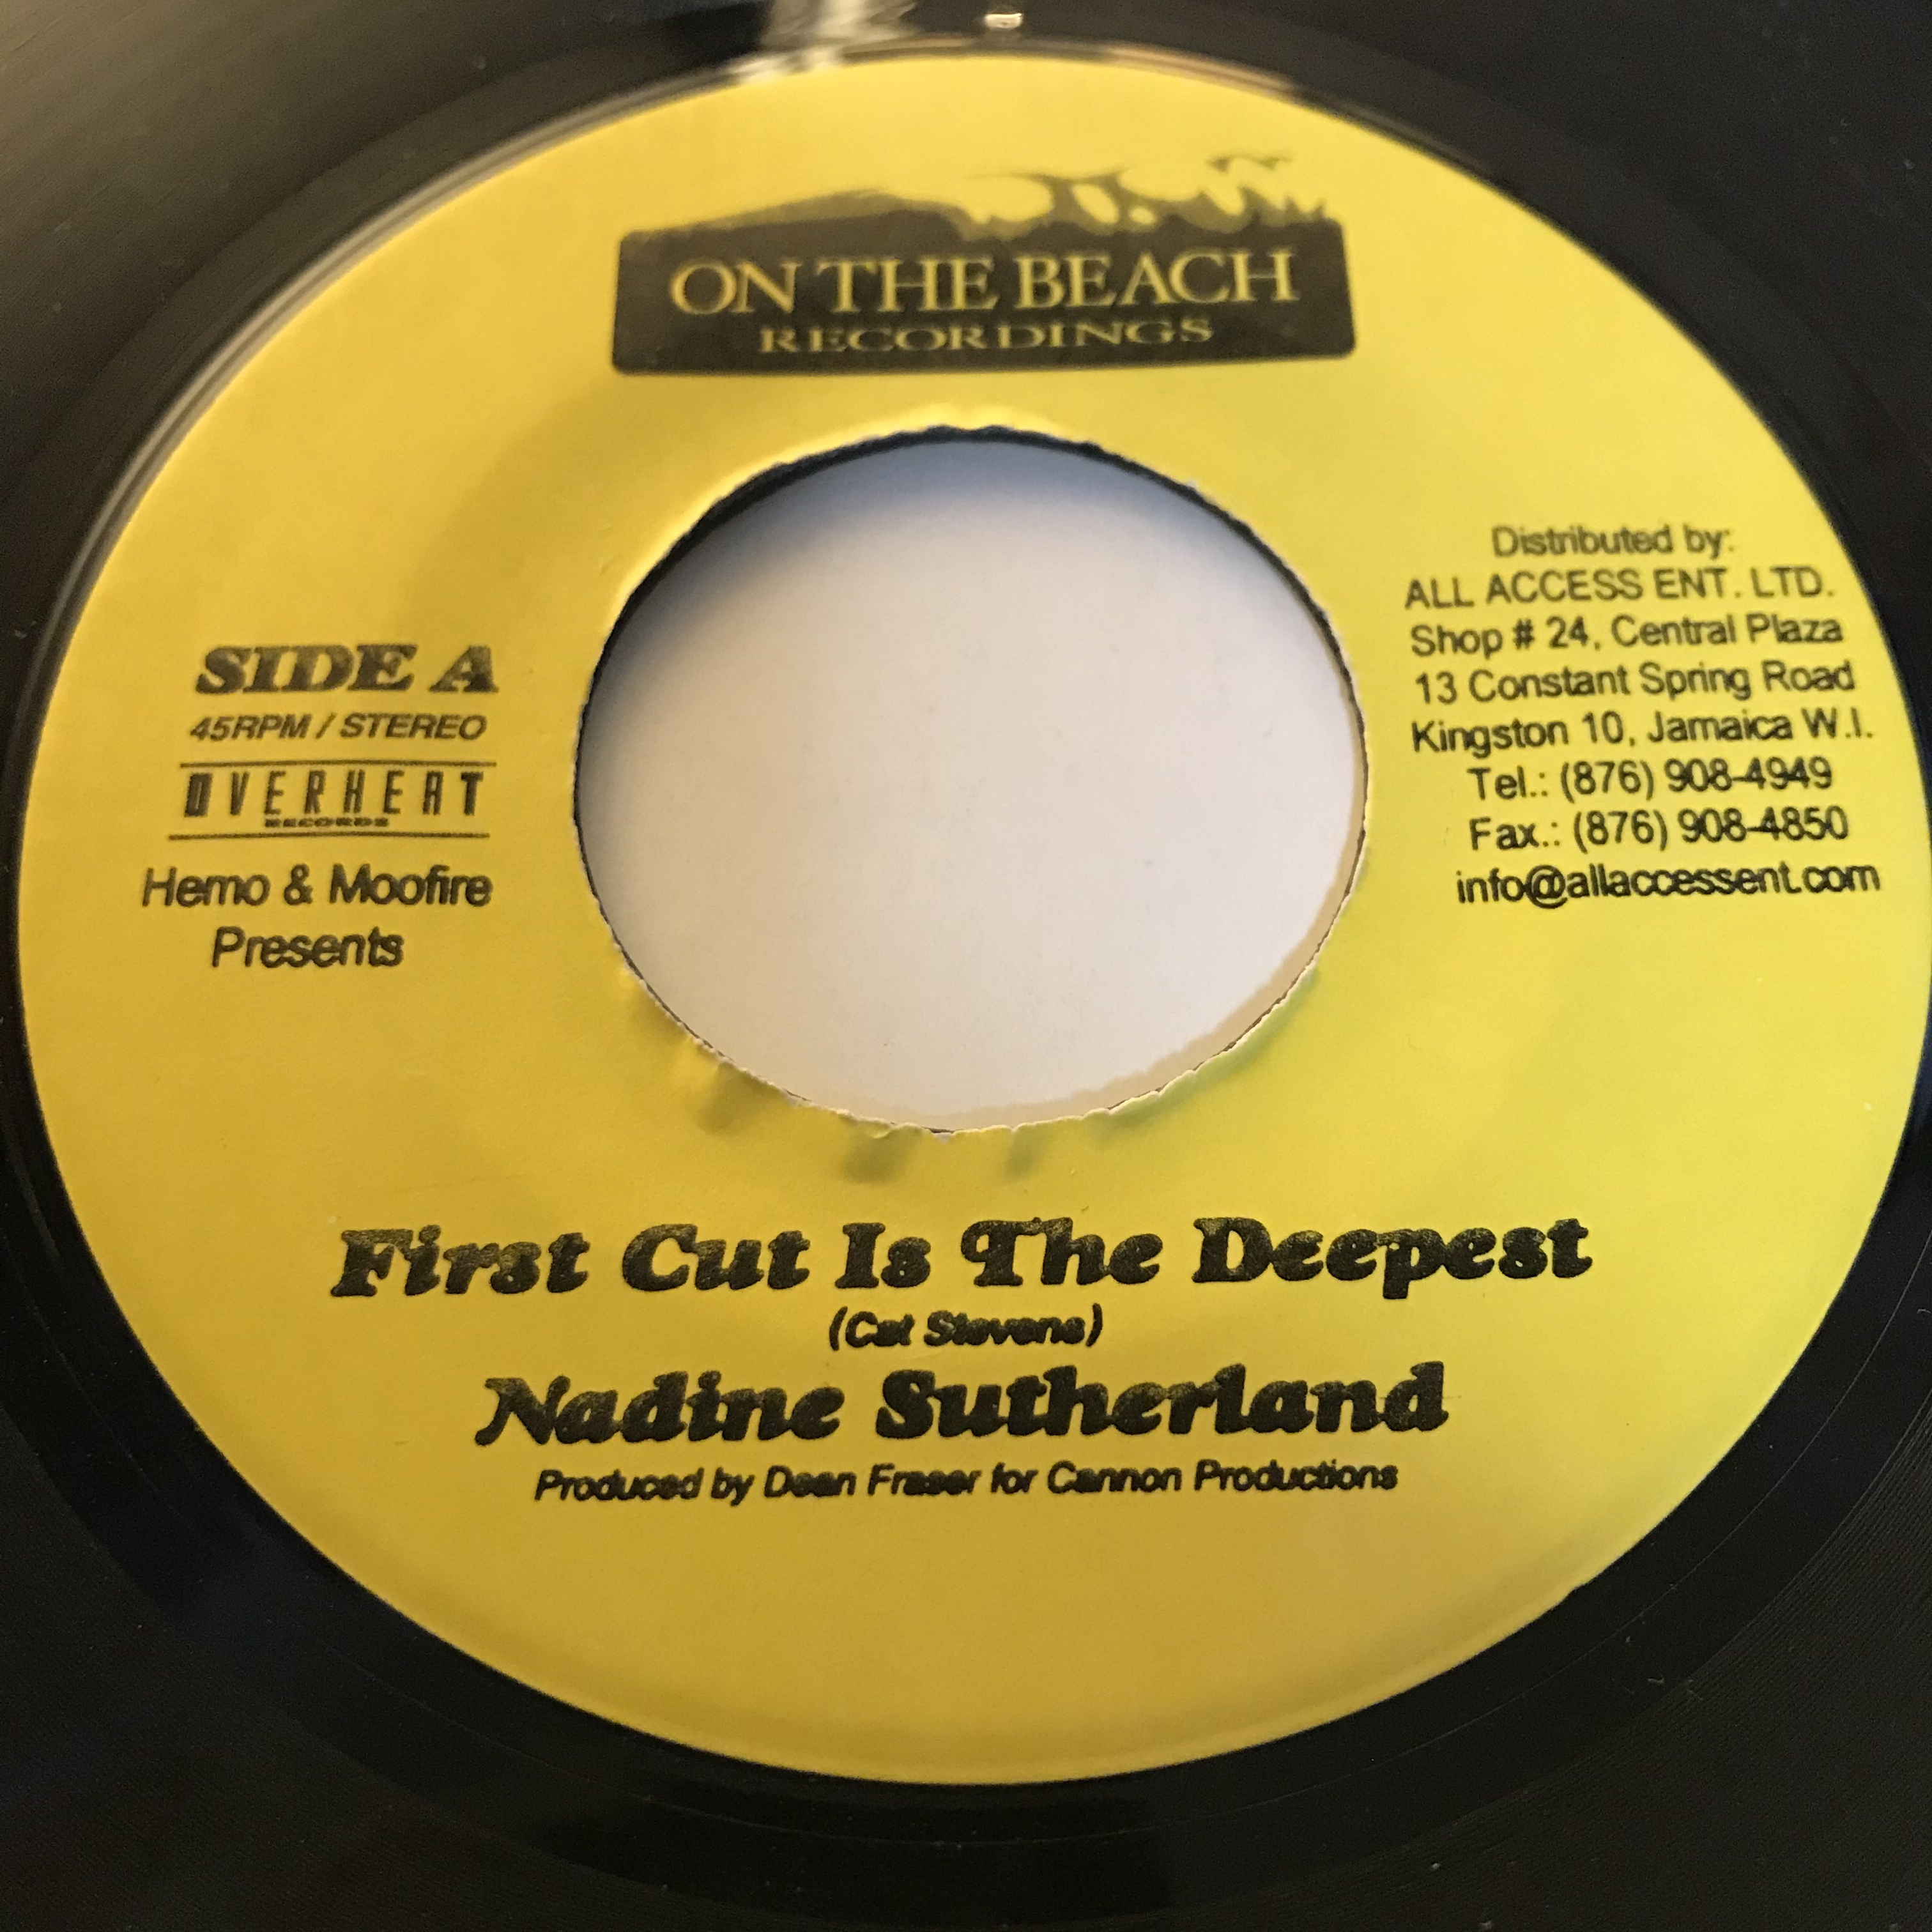 Nadine Sutherland - First Cut Is The Deepest【7-10858】